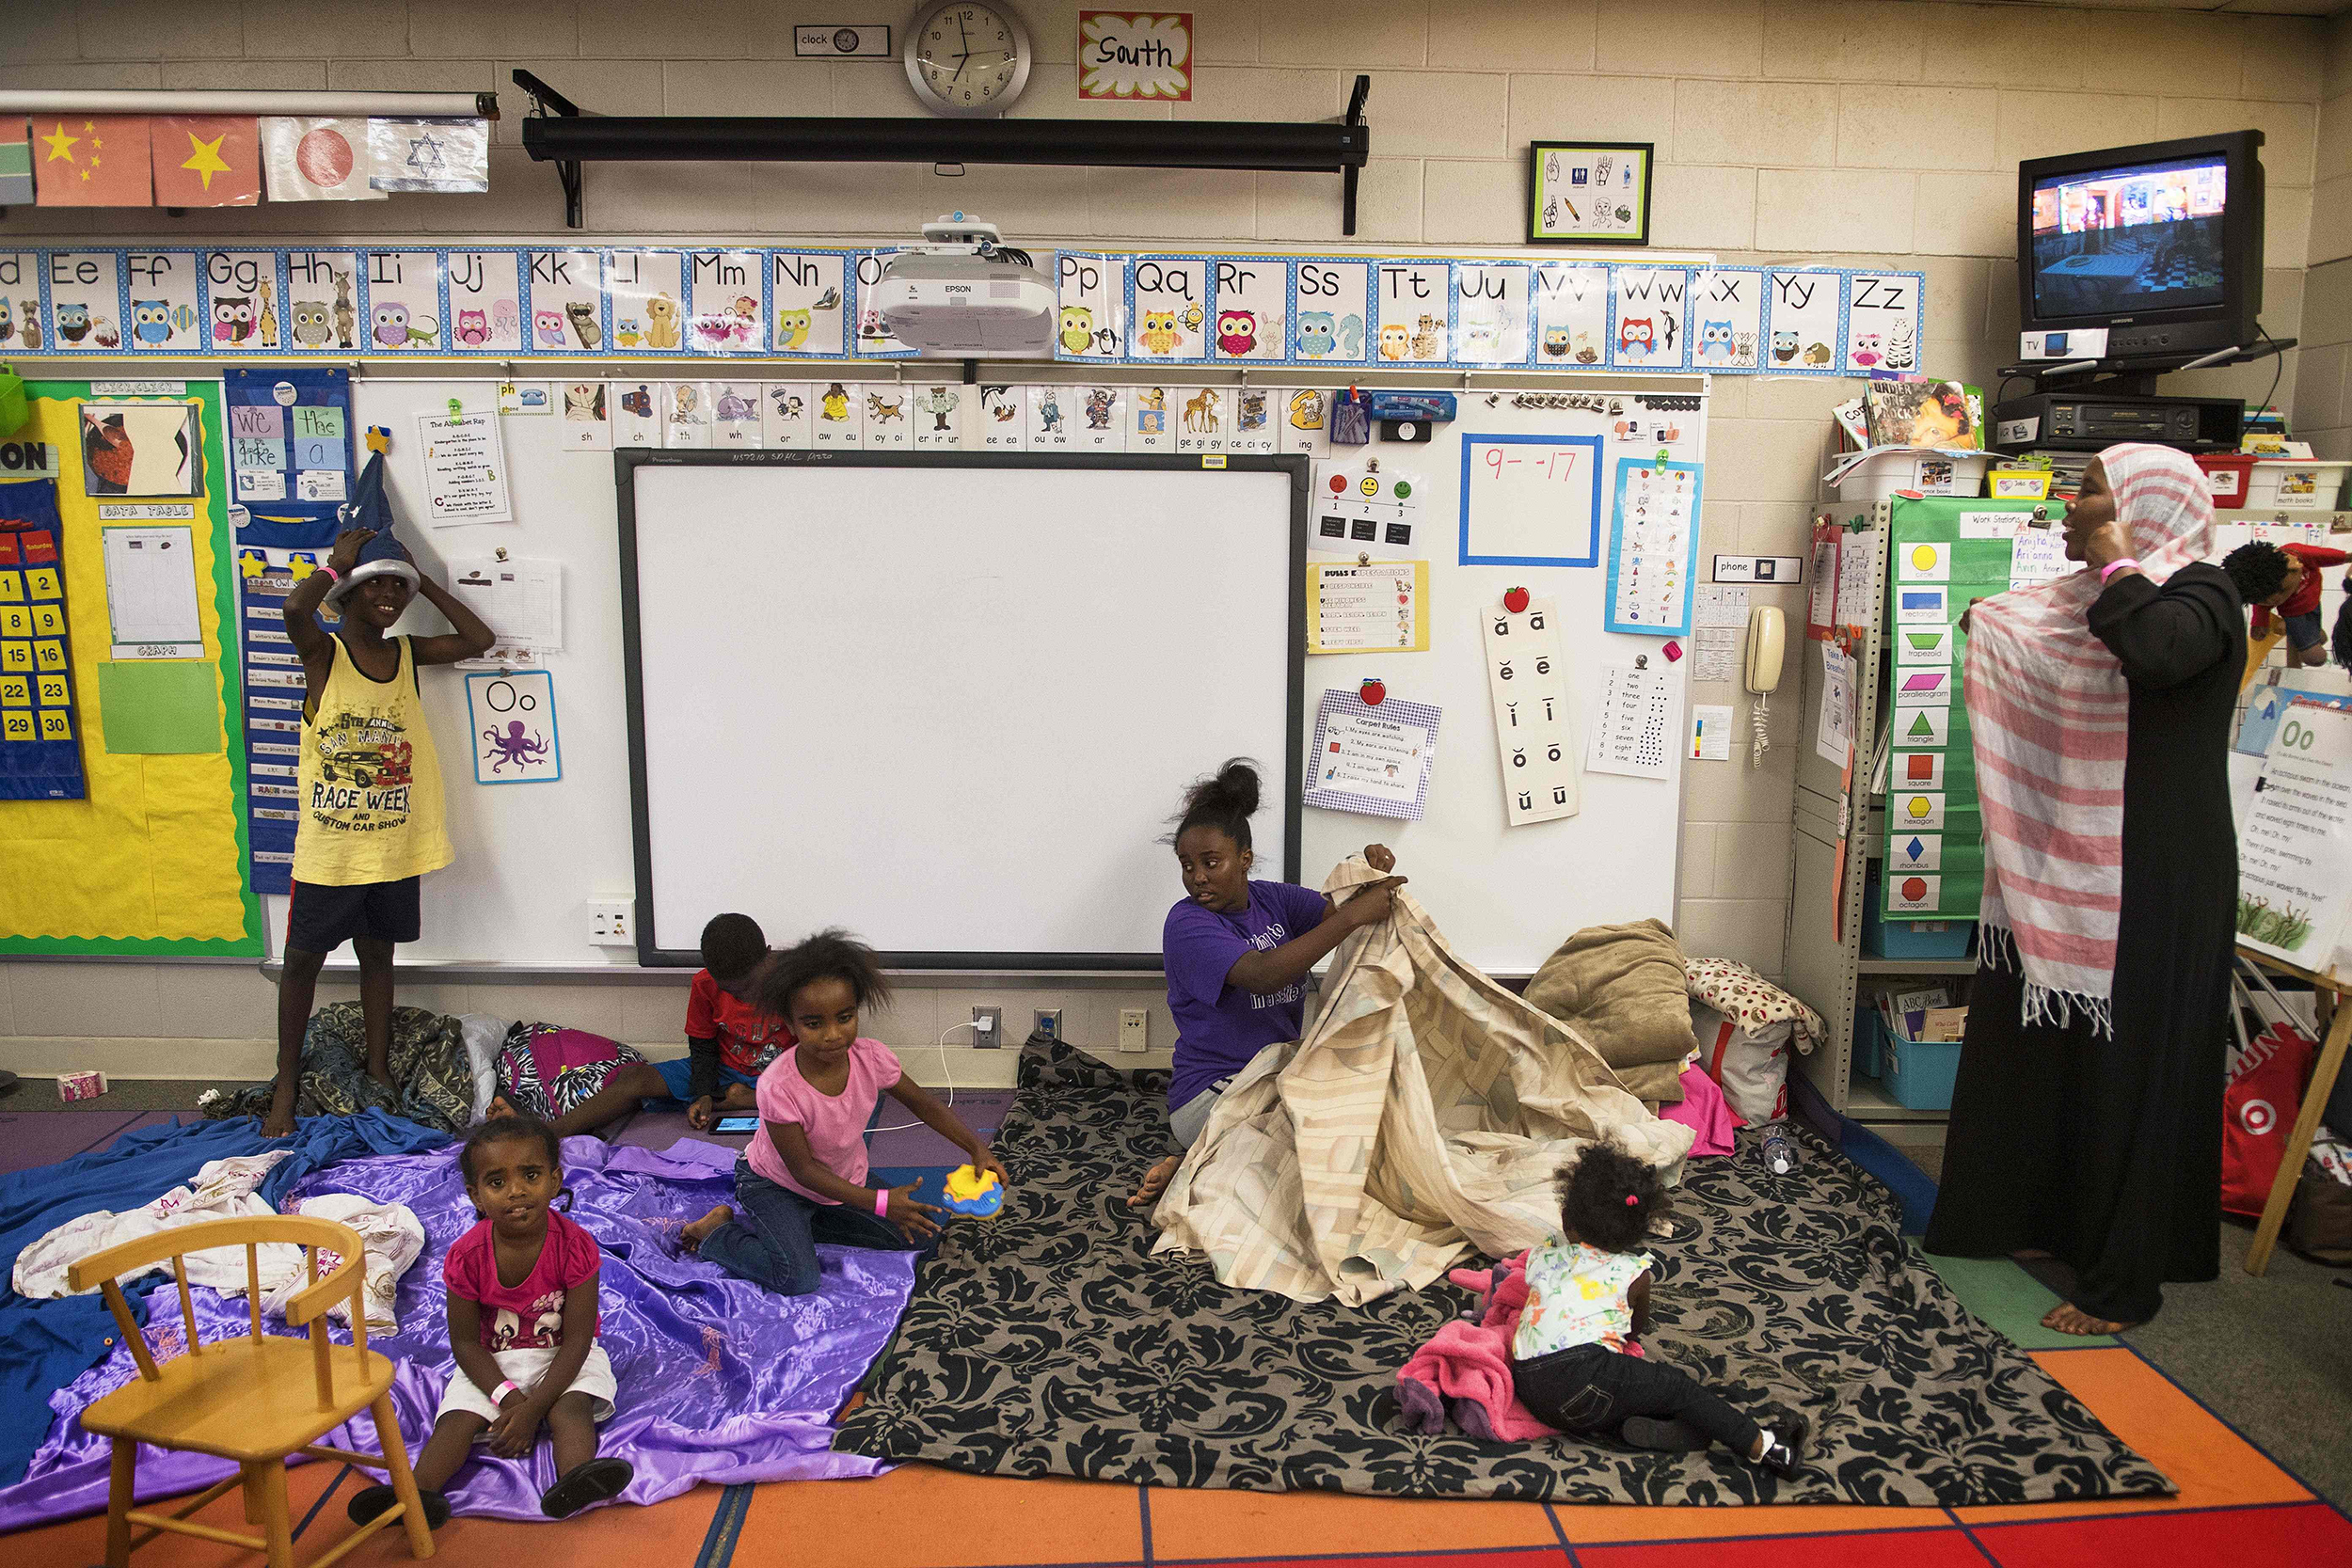 Image: A family makes sleeping arrangements in a classroom at a shelter within the Pizzo Elementary School in Tampa